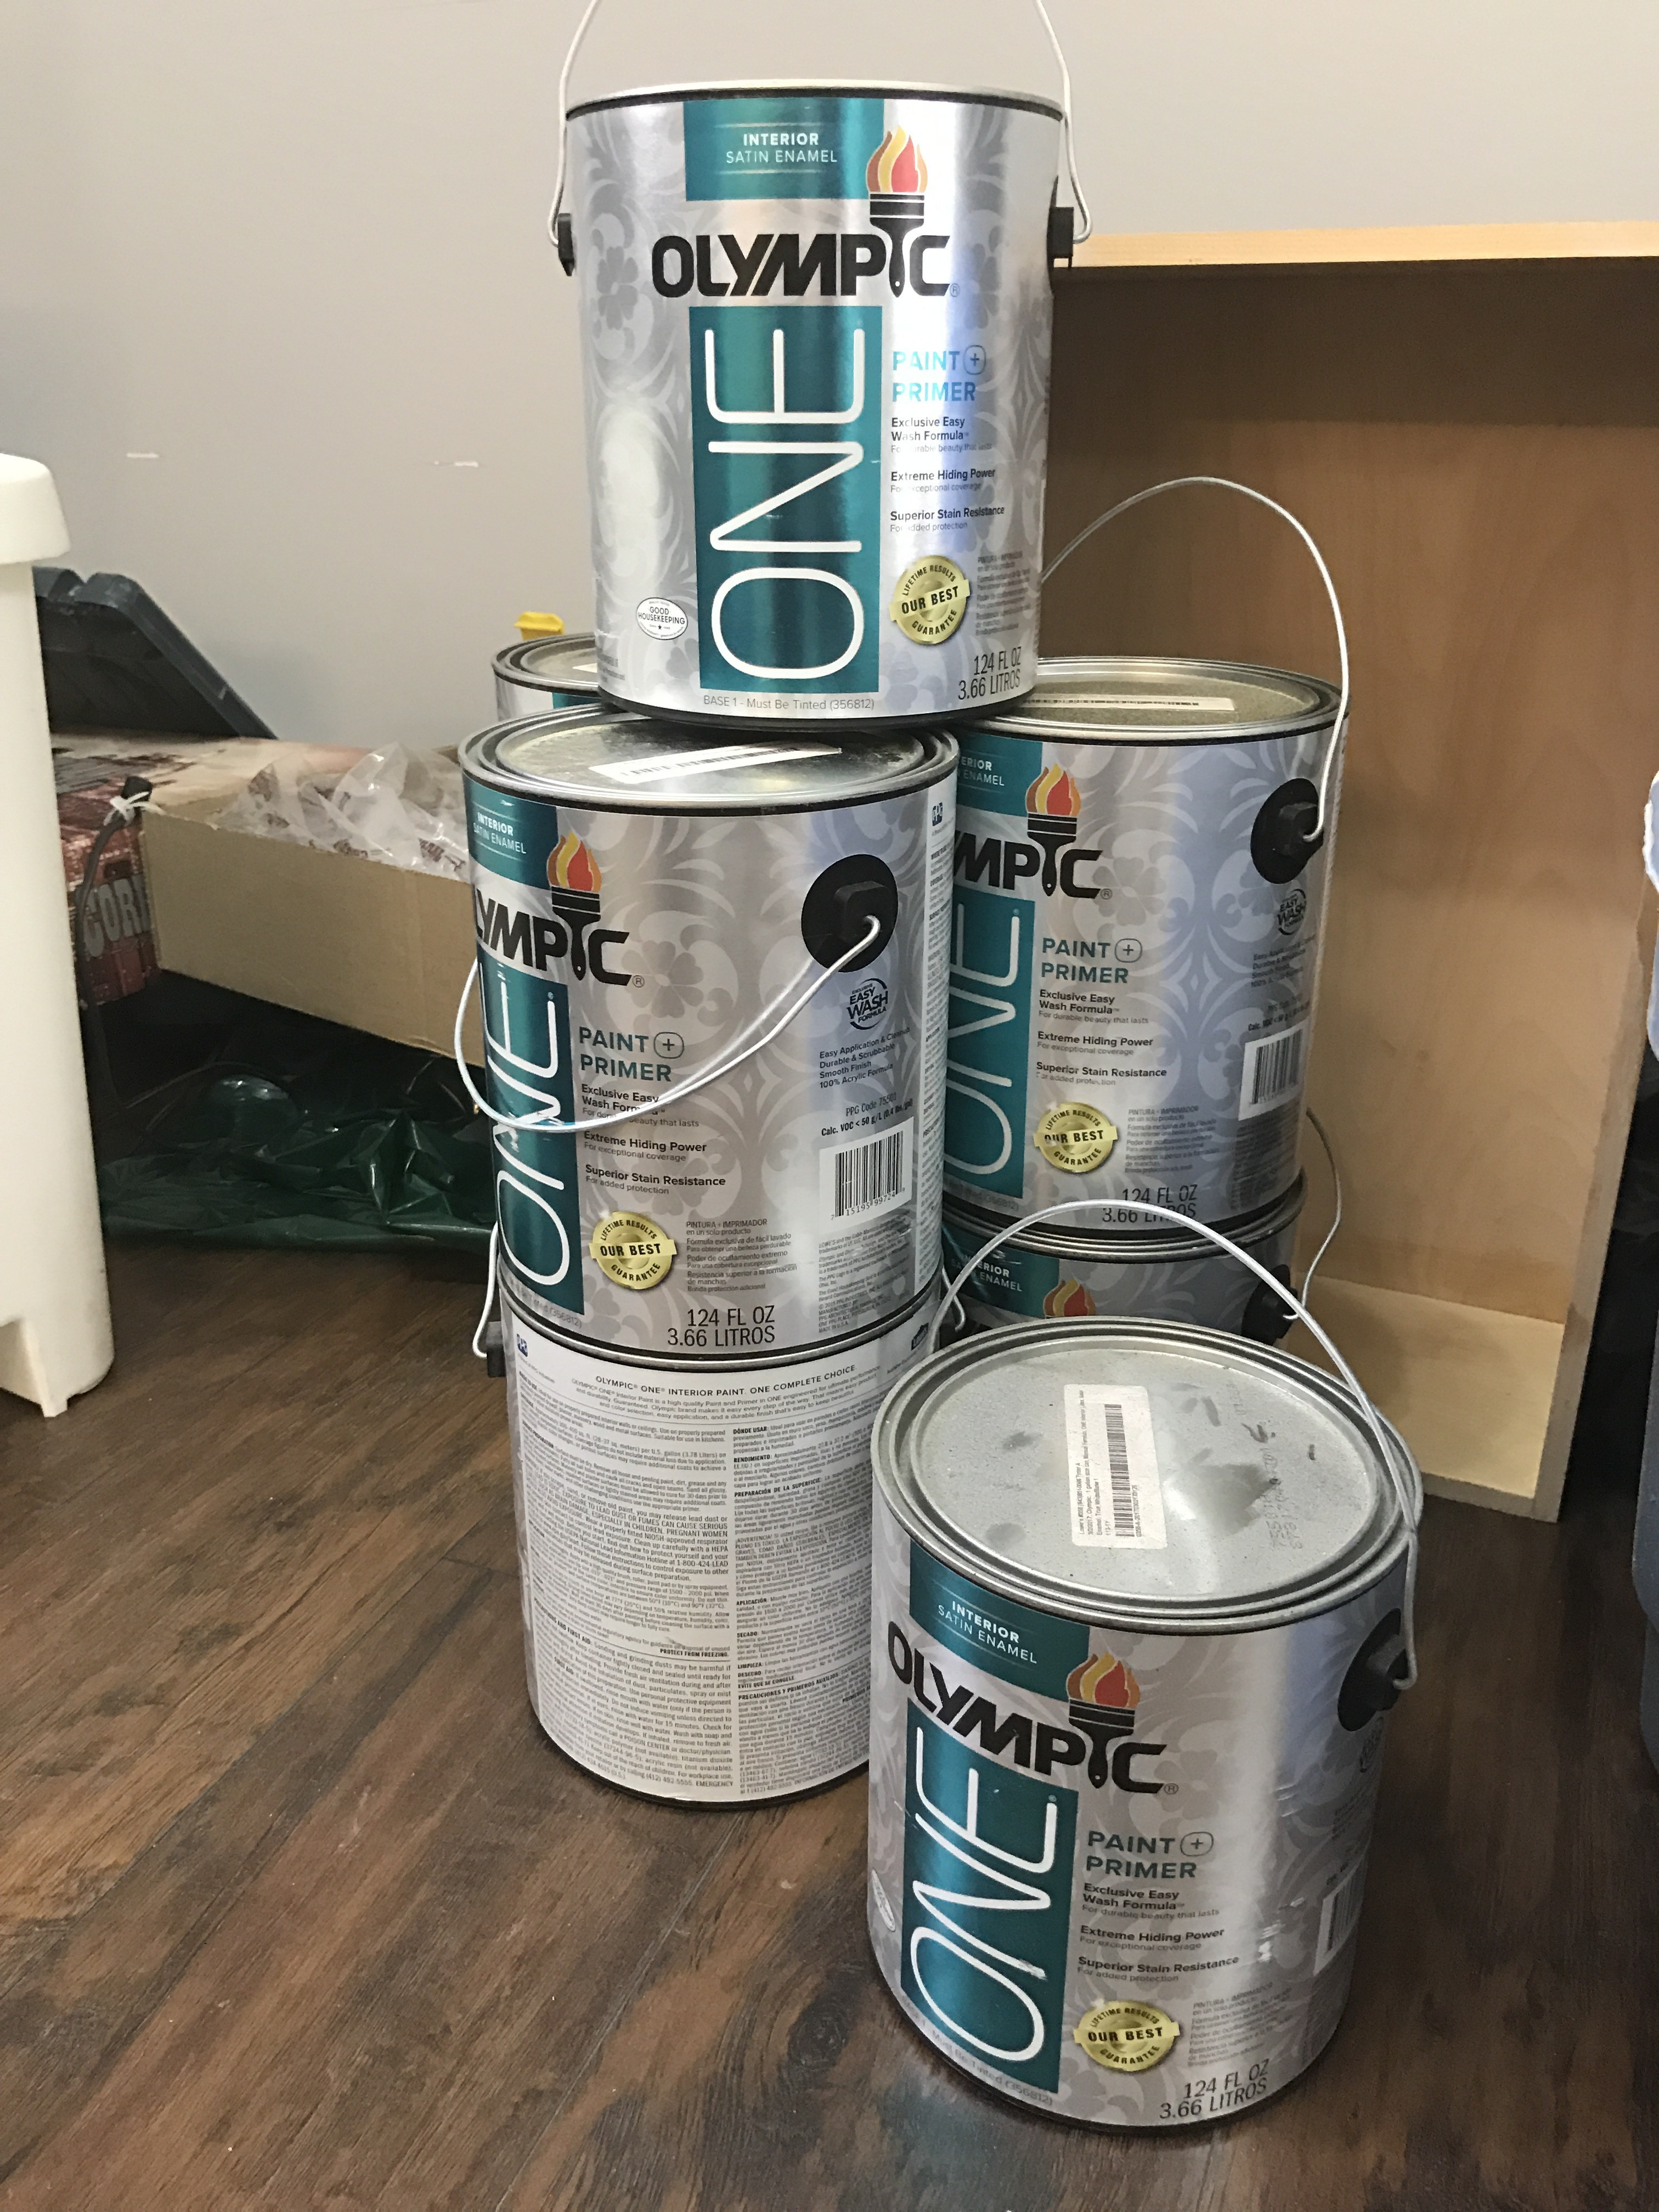 Olympic One Paintprimer Diggerslist